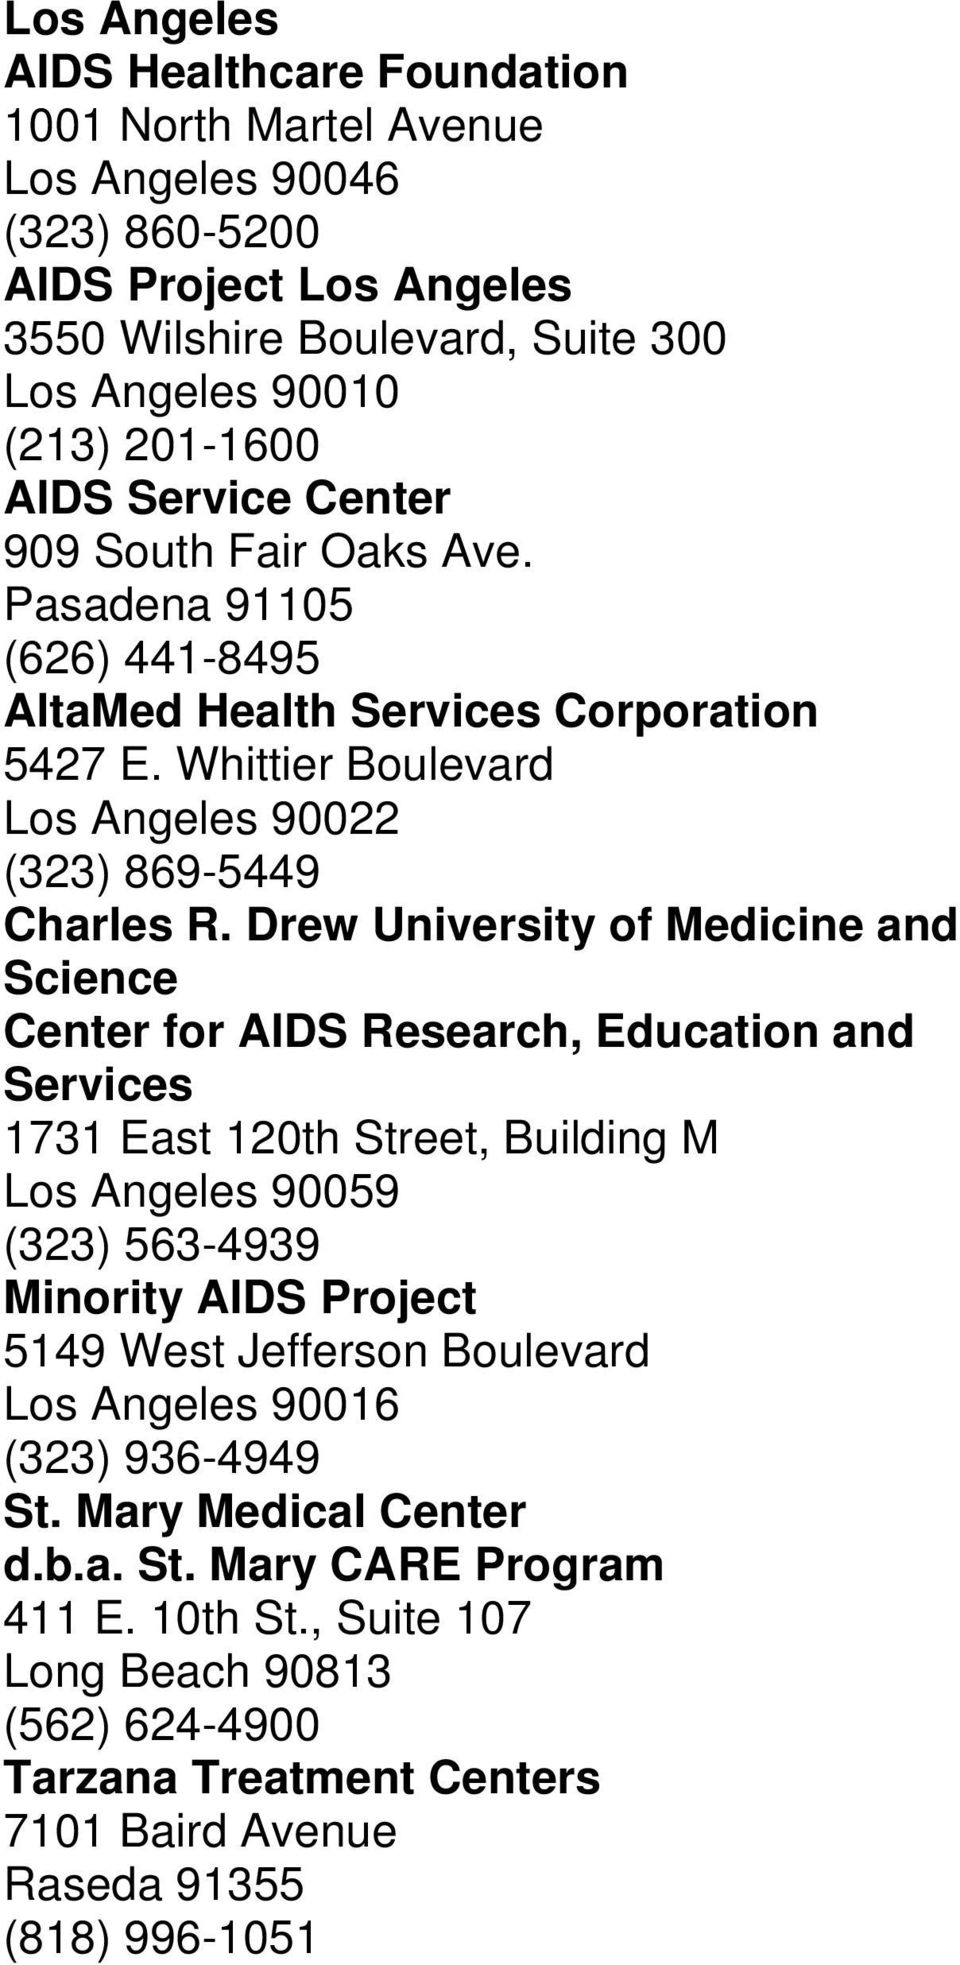 Drew University of Medicine and Science Center for AIDS Research, Education and Services 1731 East 120th Street, Building M Los Angeles 90059 (323) 563-4939 Minority AIDS Project 5149 West Jefferson